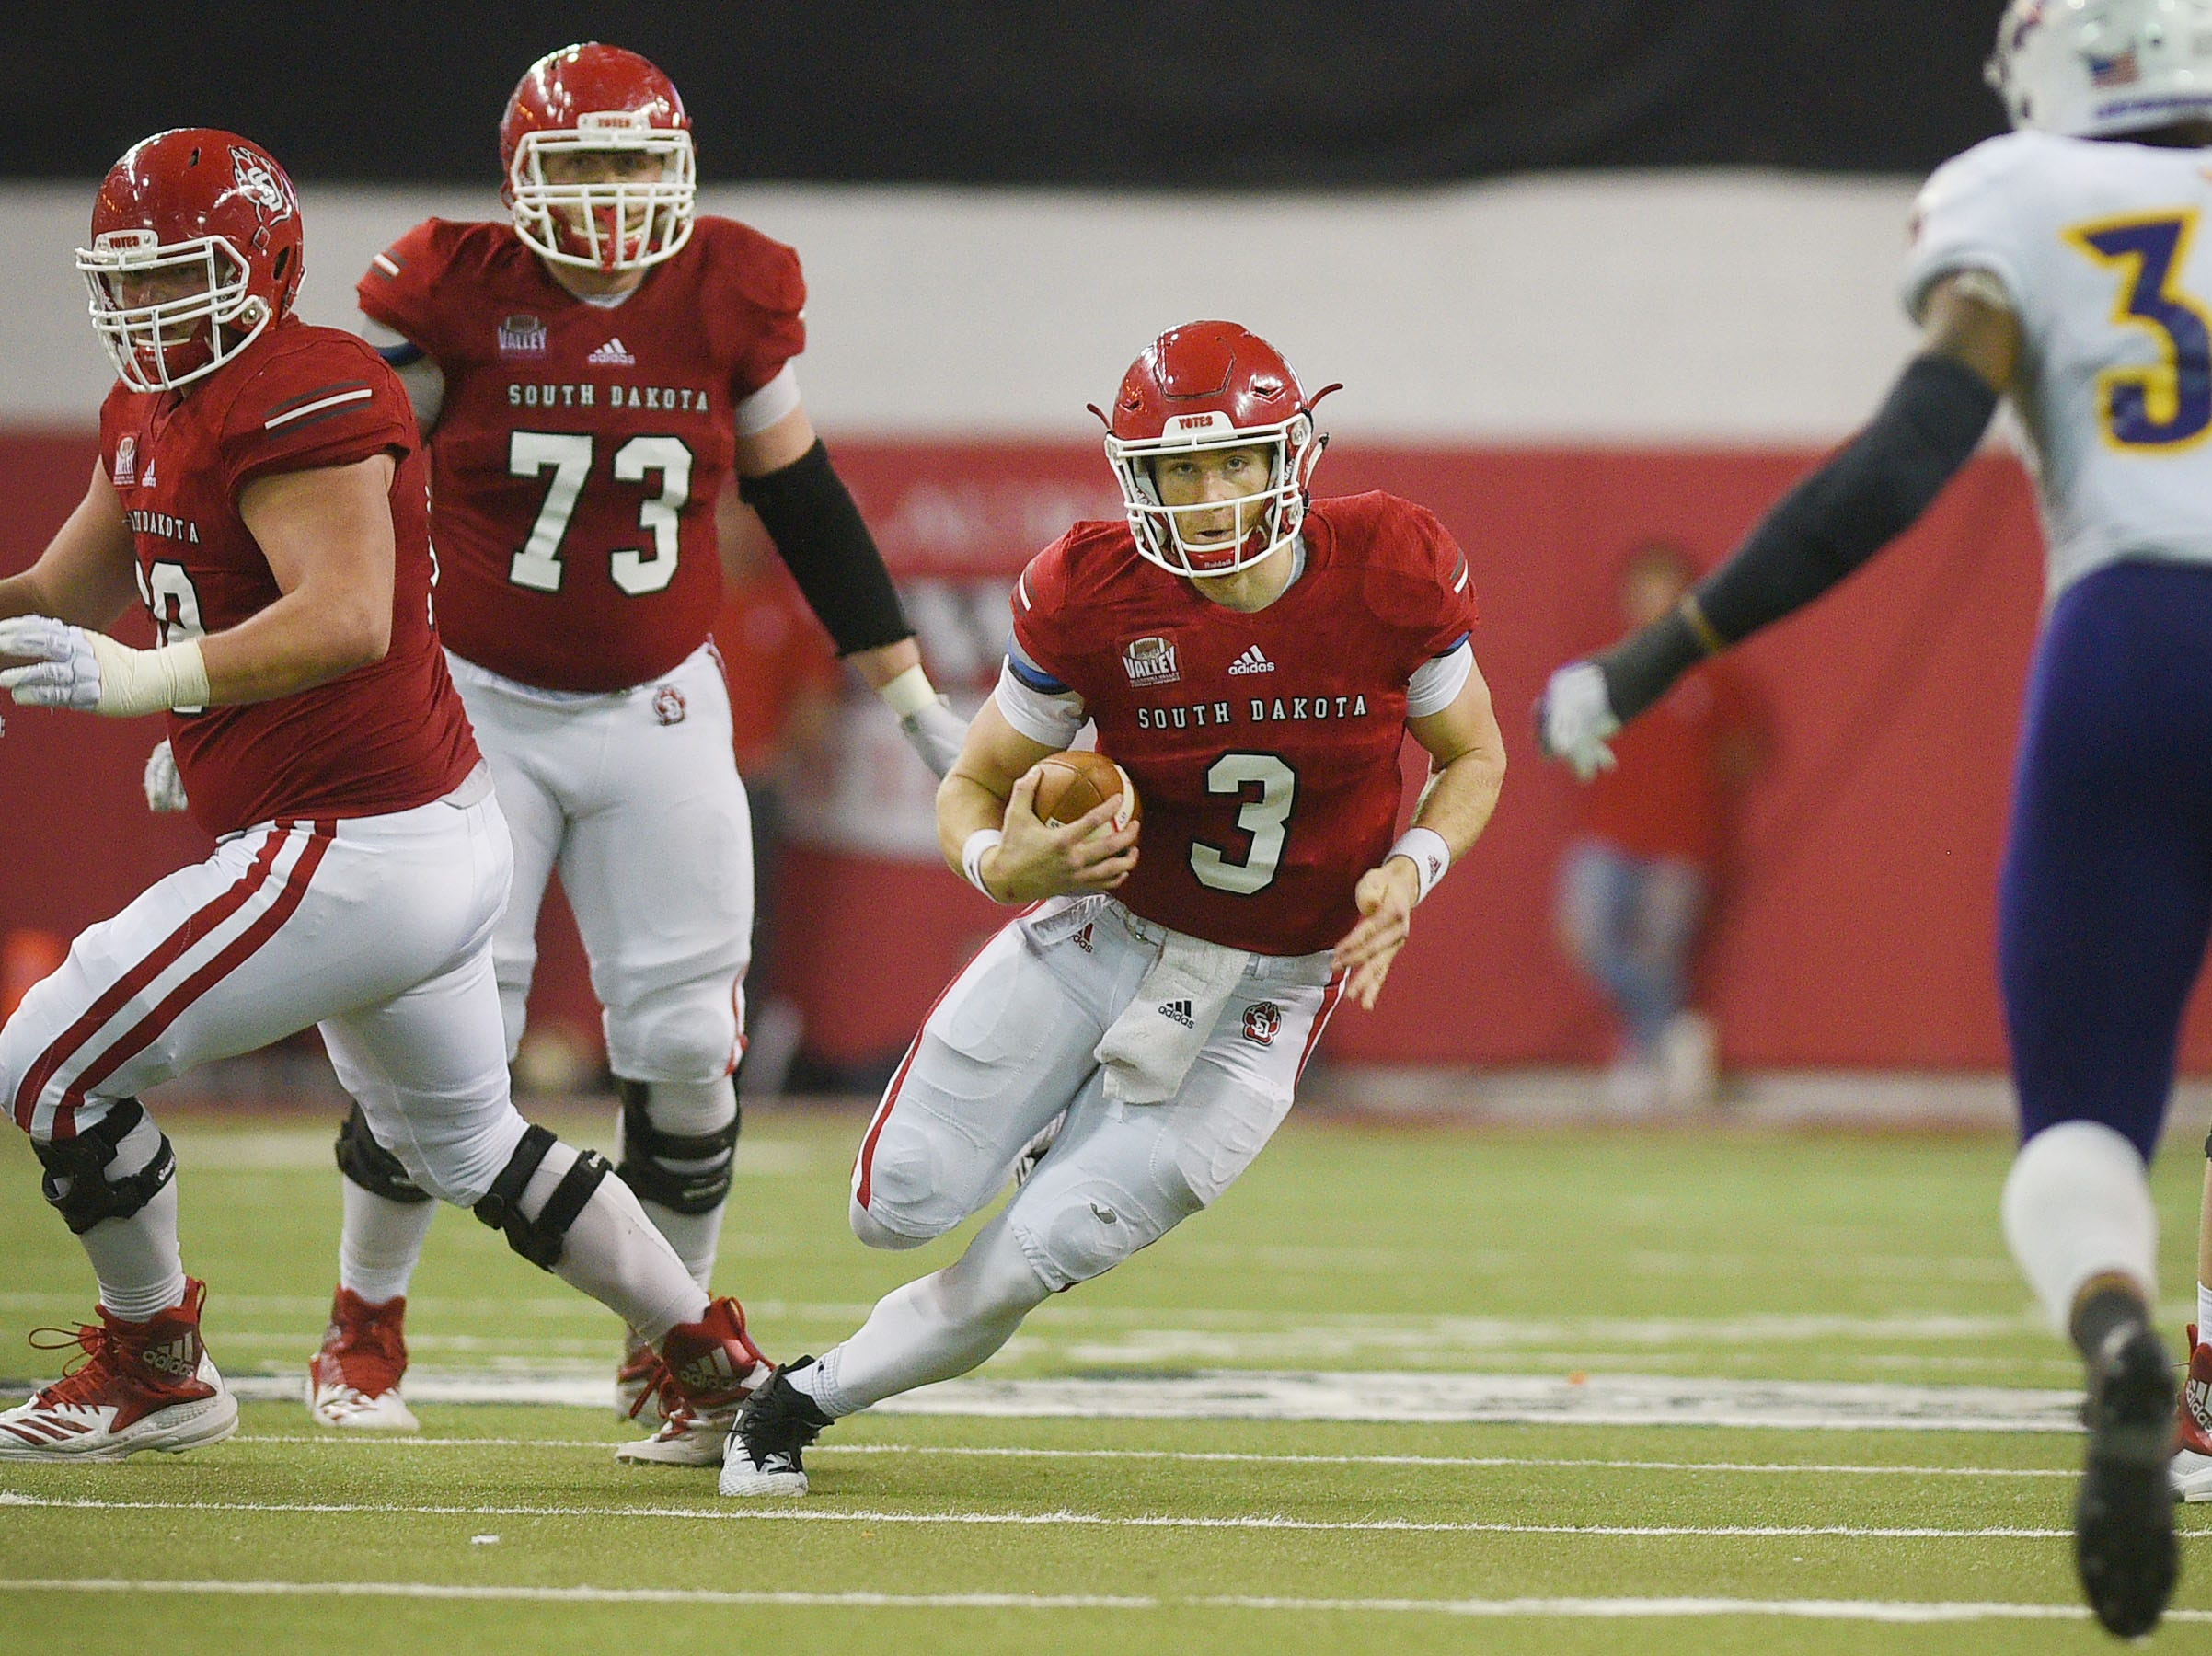 USD's Austin Simmons runs the ball during the game against Western Illinois Saturday, Nov. 10, at the DakotaDome in Vermillion.